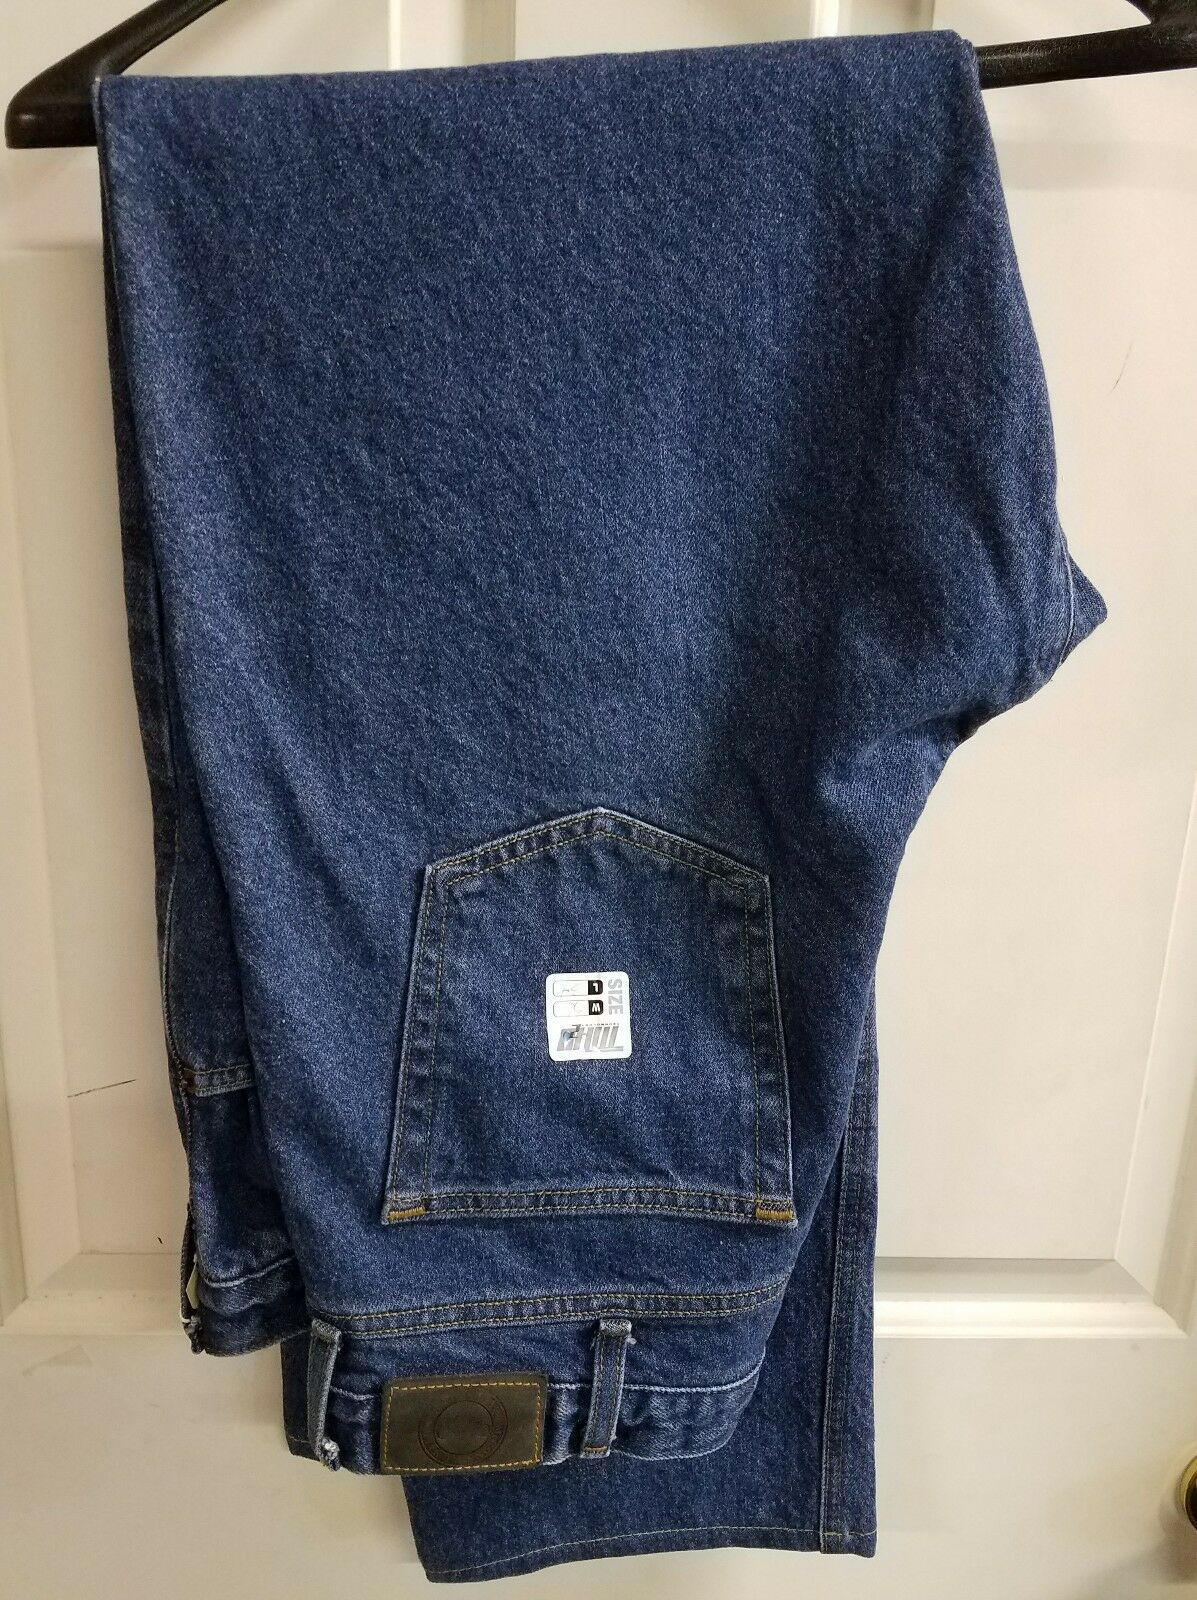 NEW McConnell Hall water resistant jeans, 36x34